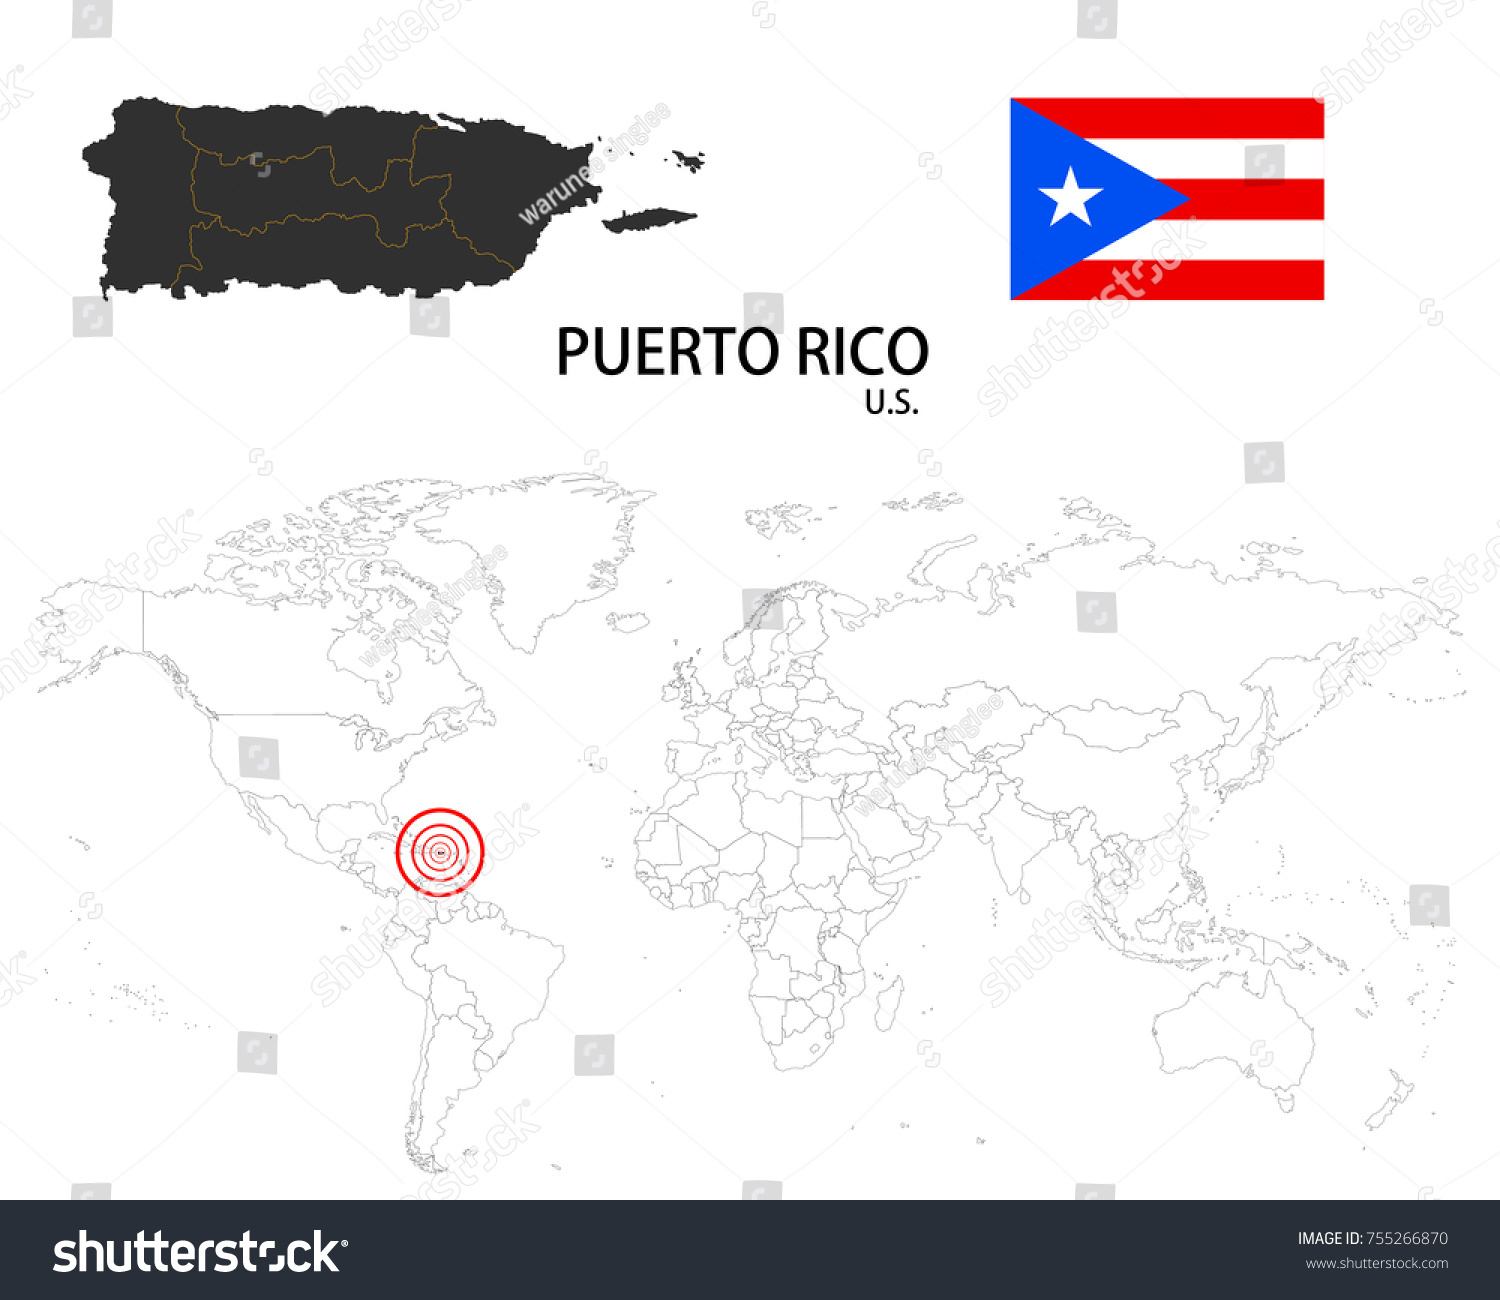 Puerto Rico Us Map On World Stock Vector Shutterstock - Us map with puerto rico